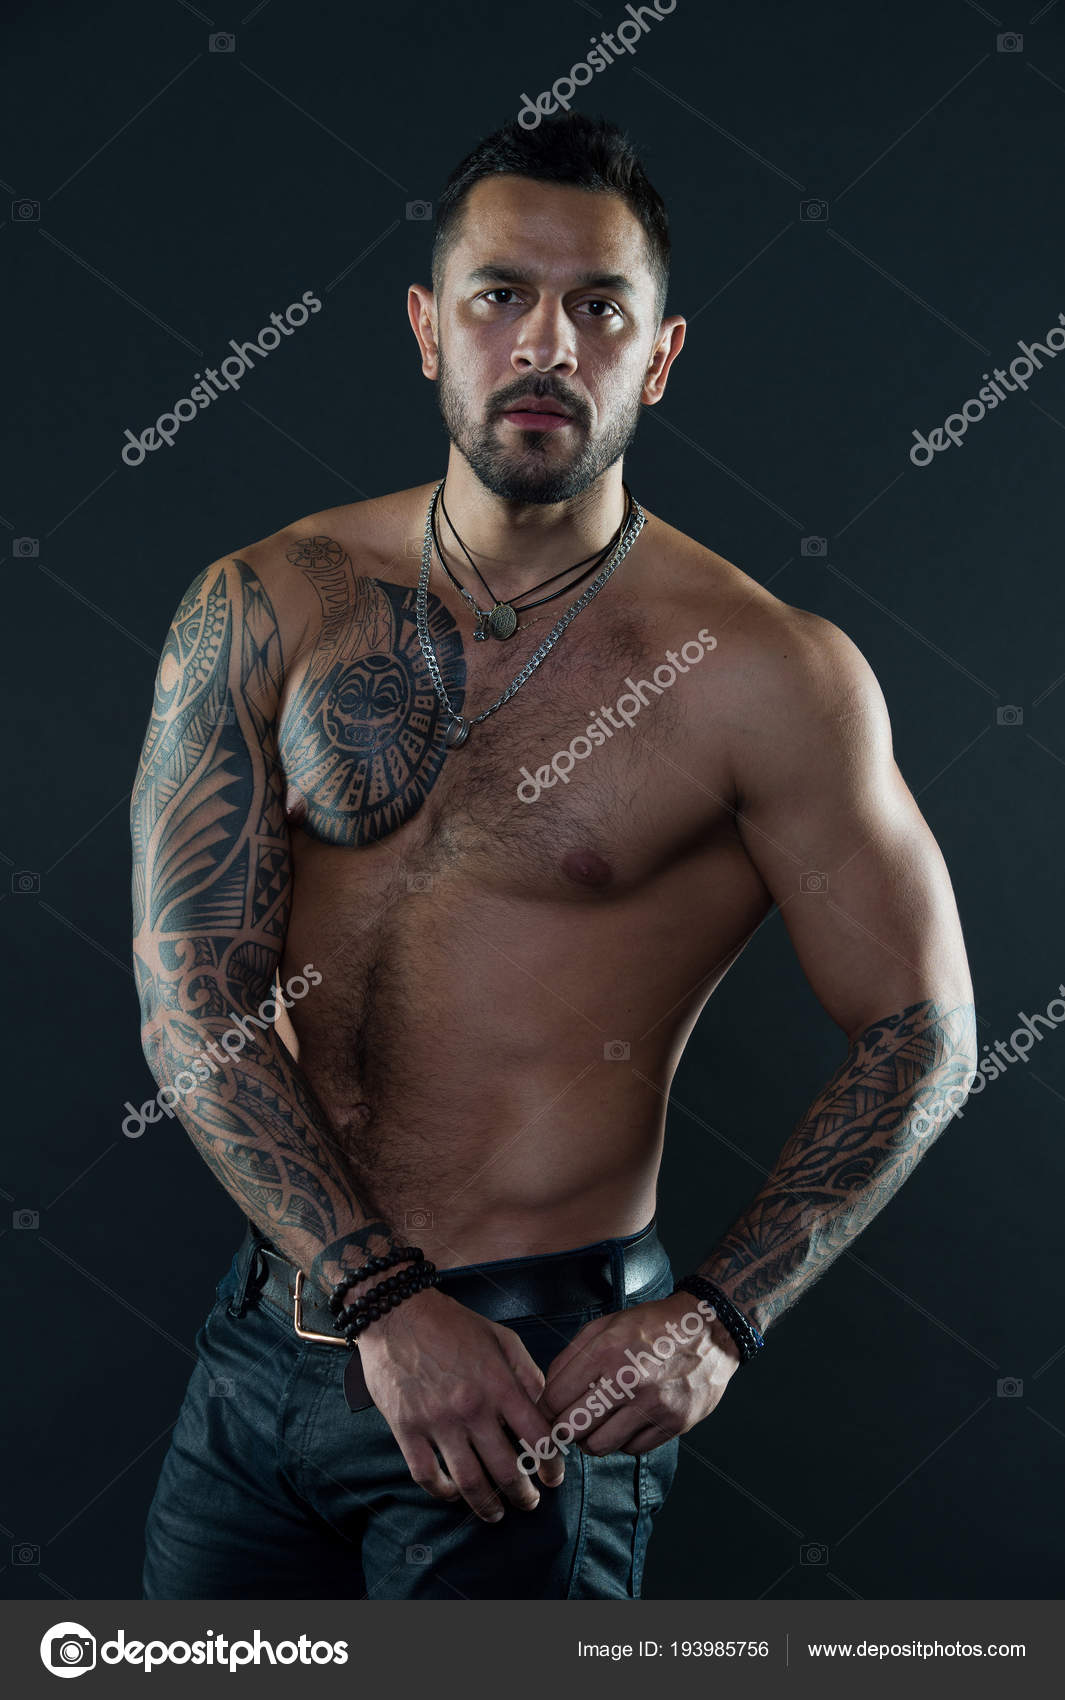 6c0499fa3 Bearded man with tattooed body. Macho with sexy bare torso in jeans. Tattoo  model with six pack and ab. Athlete or sportsman with muscular chest and  belly.